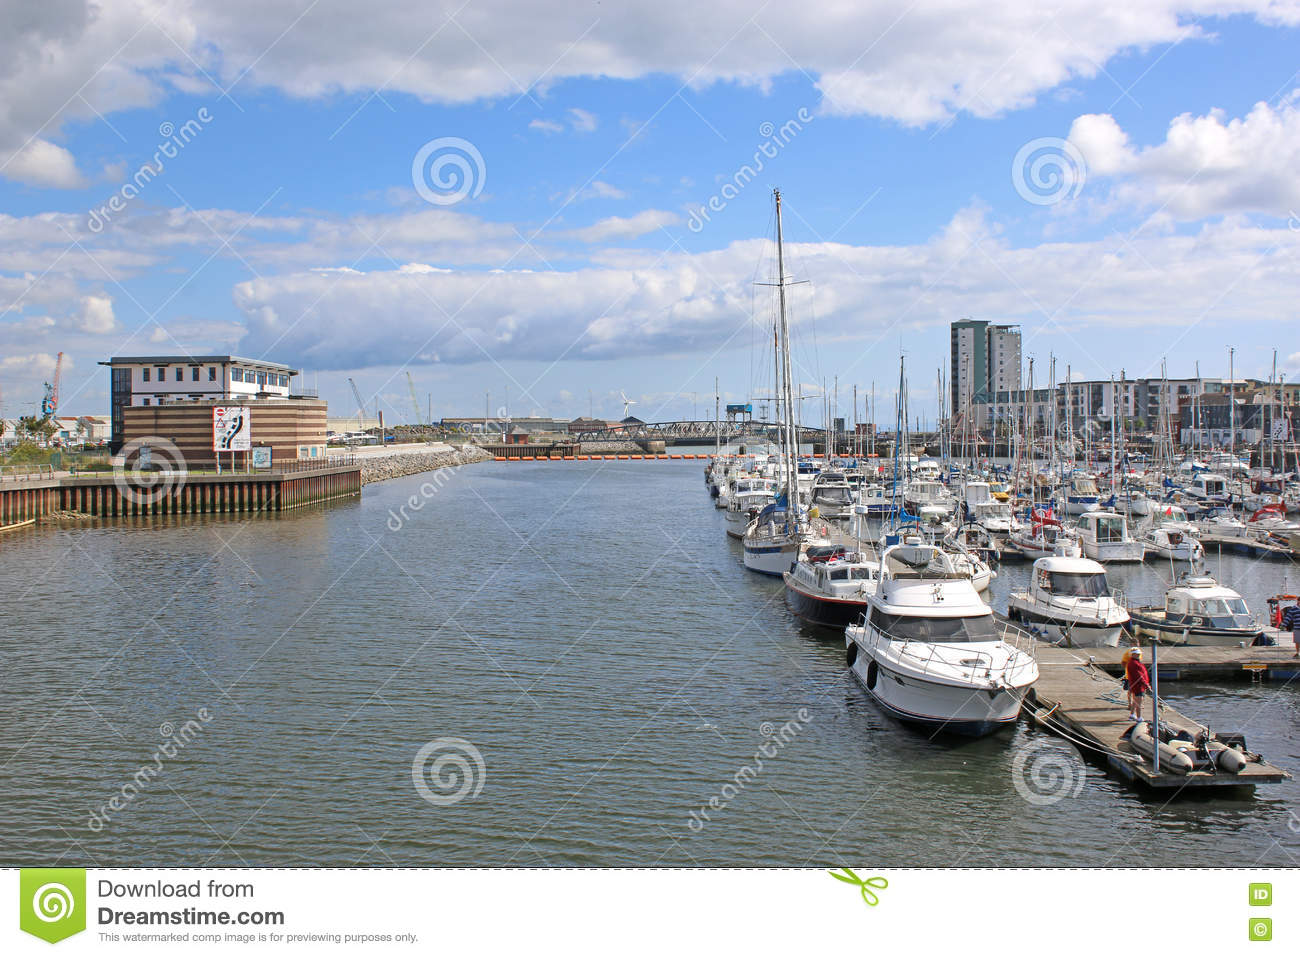 De Haven van Swansea, Wales